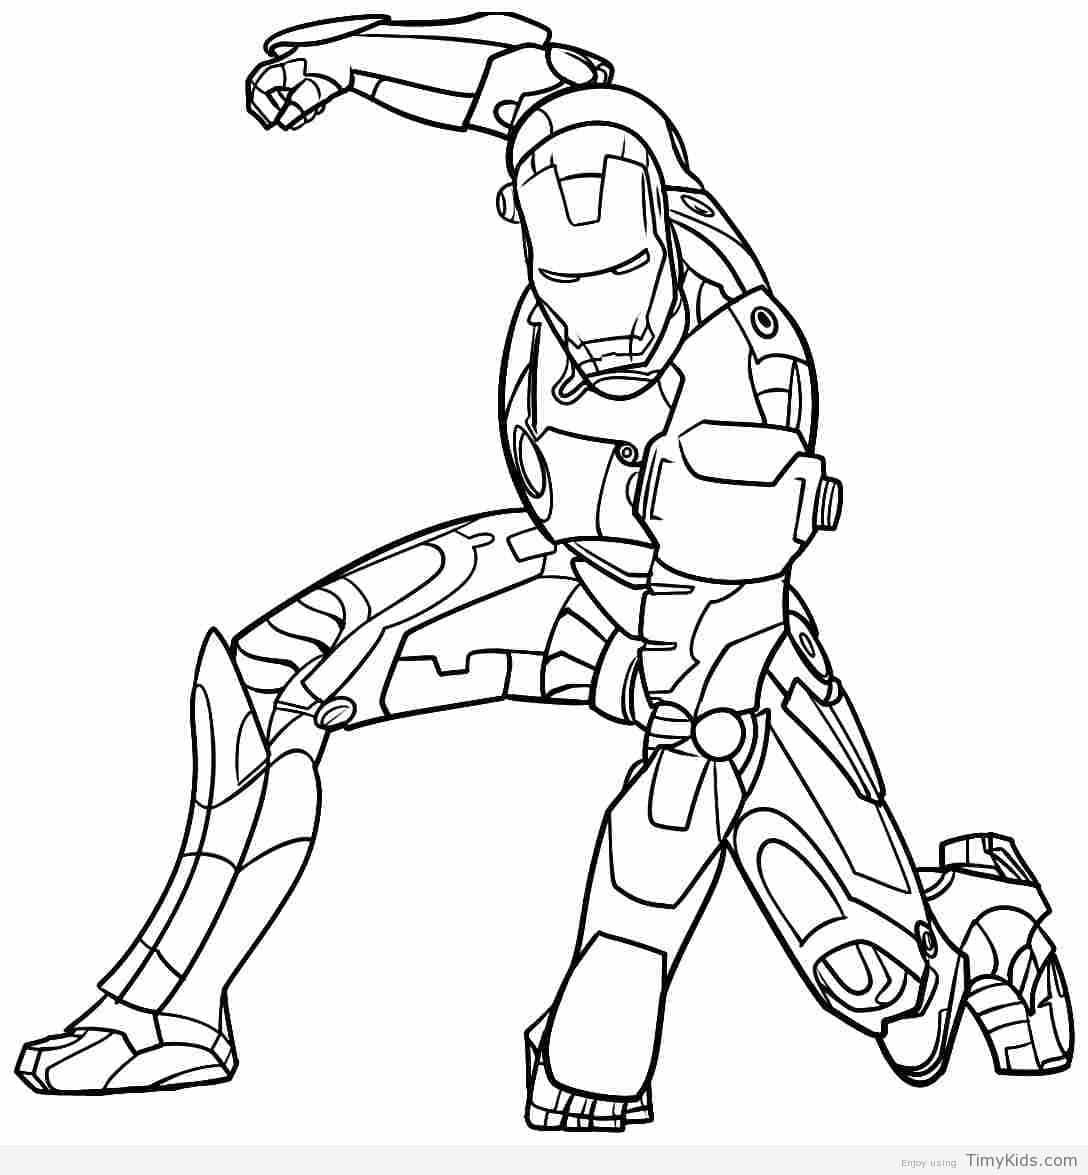 Timykids Ironman Coloring Sheet